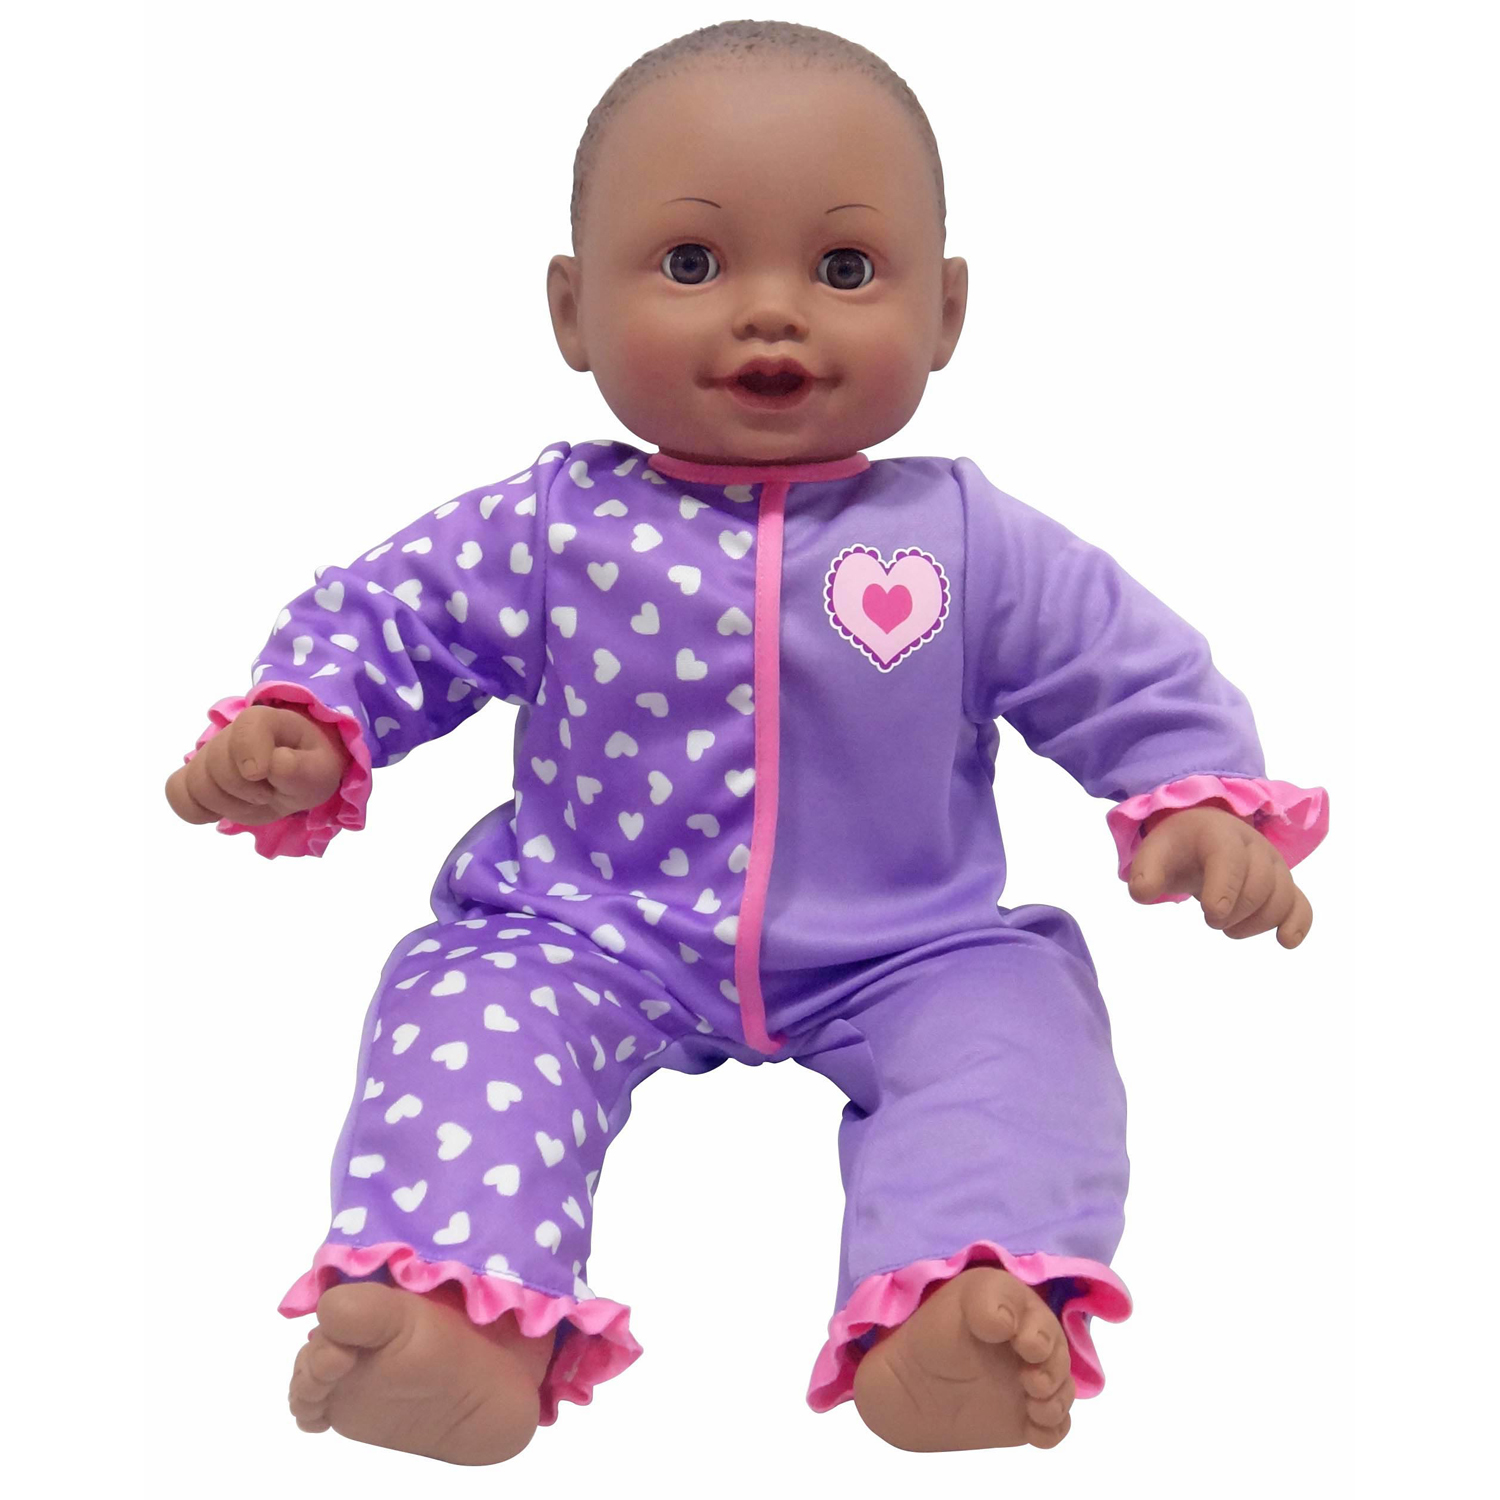 My Sweet Love 20-inch Soft Baby Doll, African American, Purple Outfit